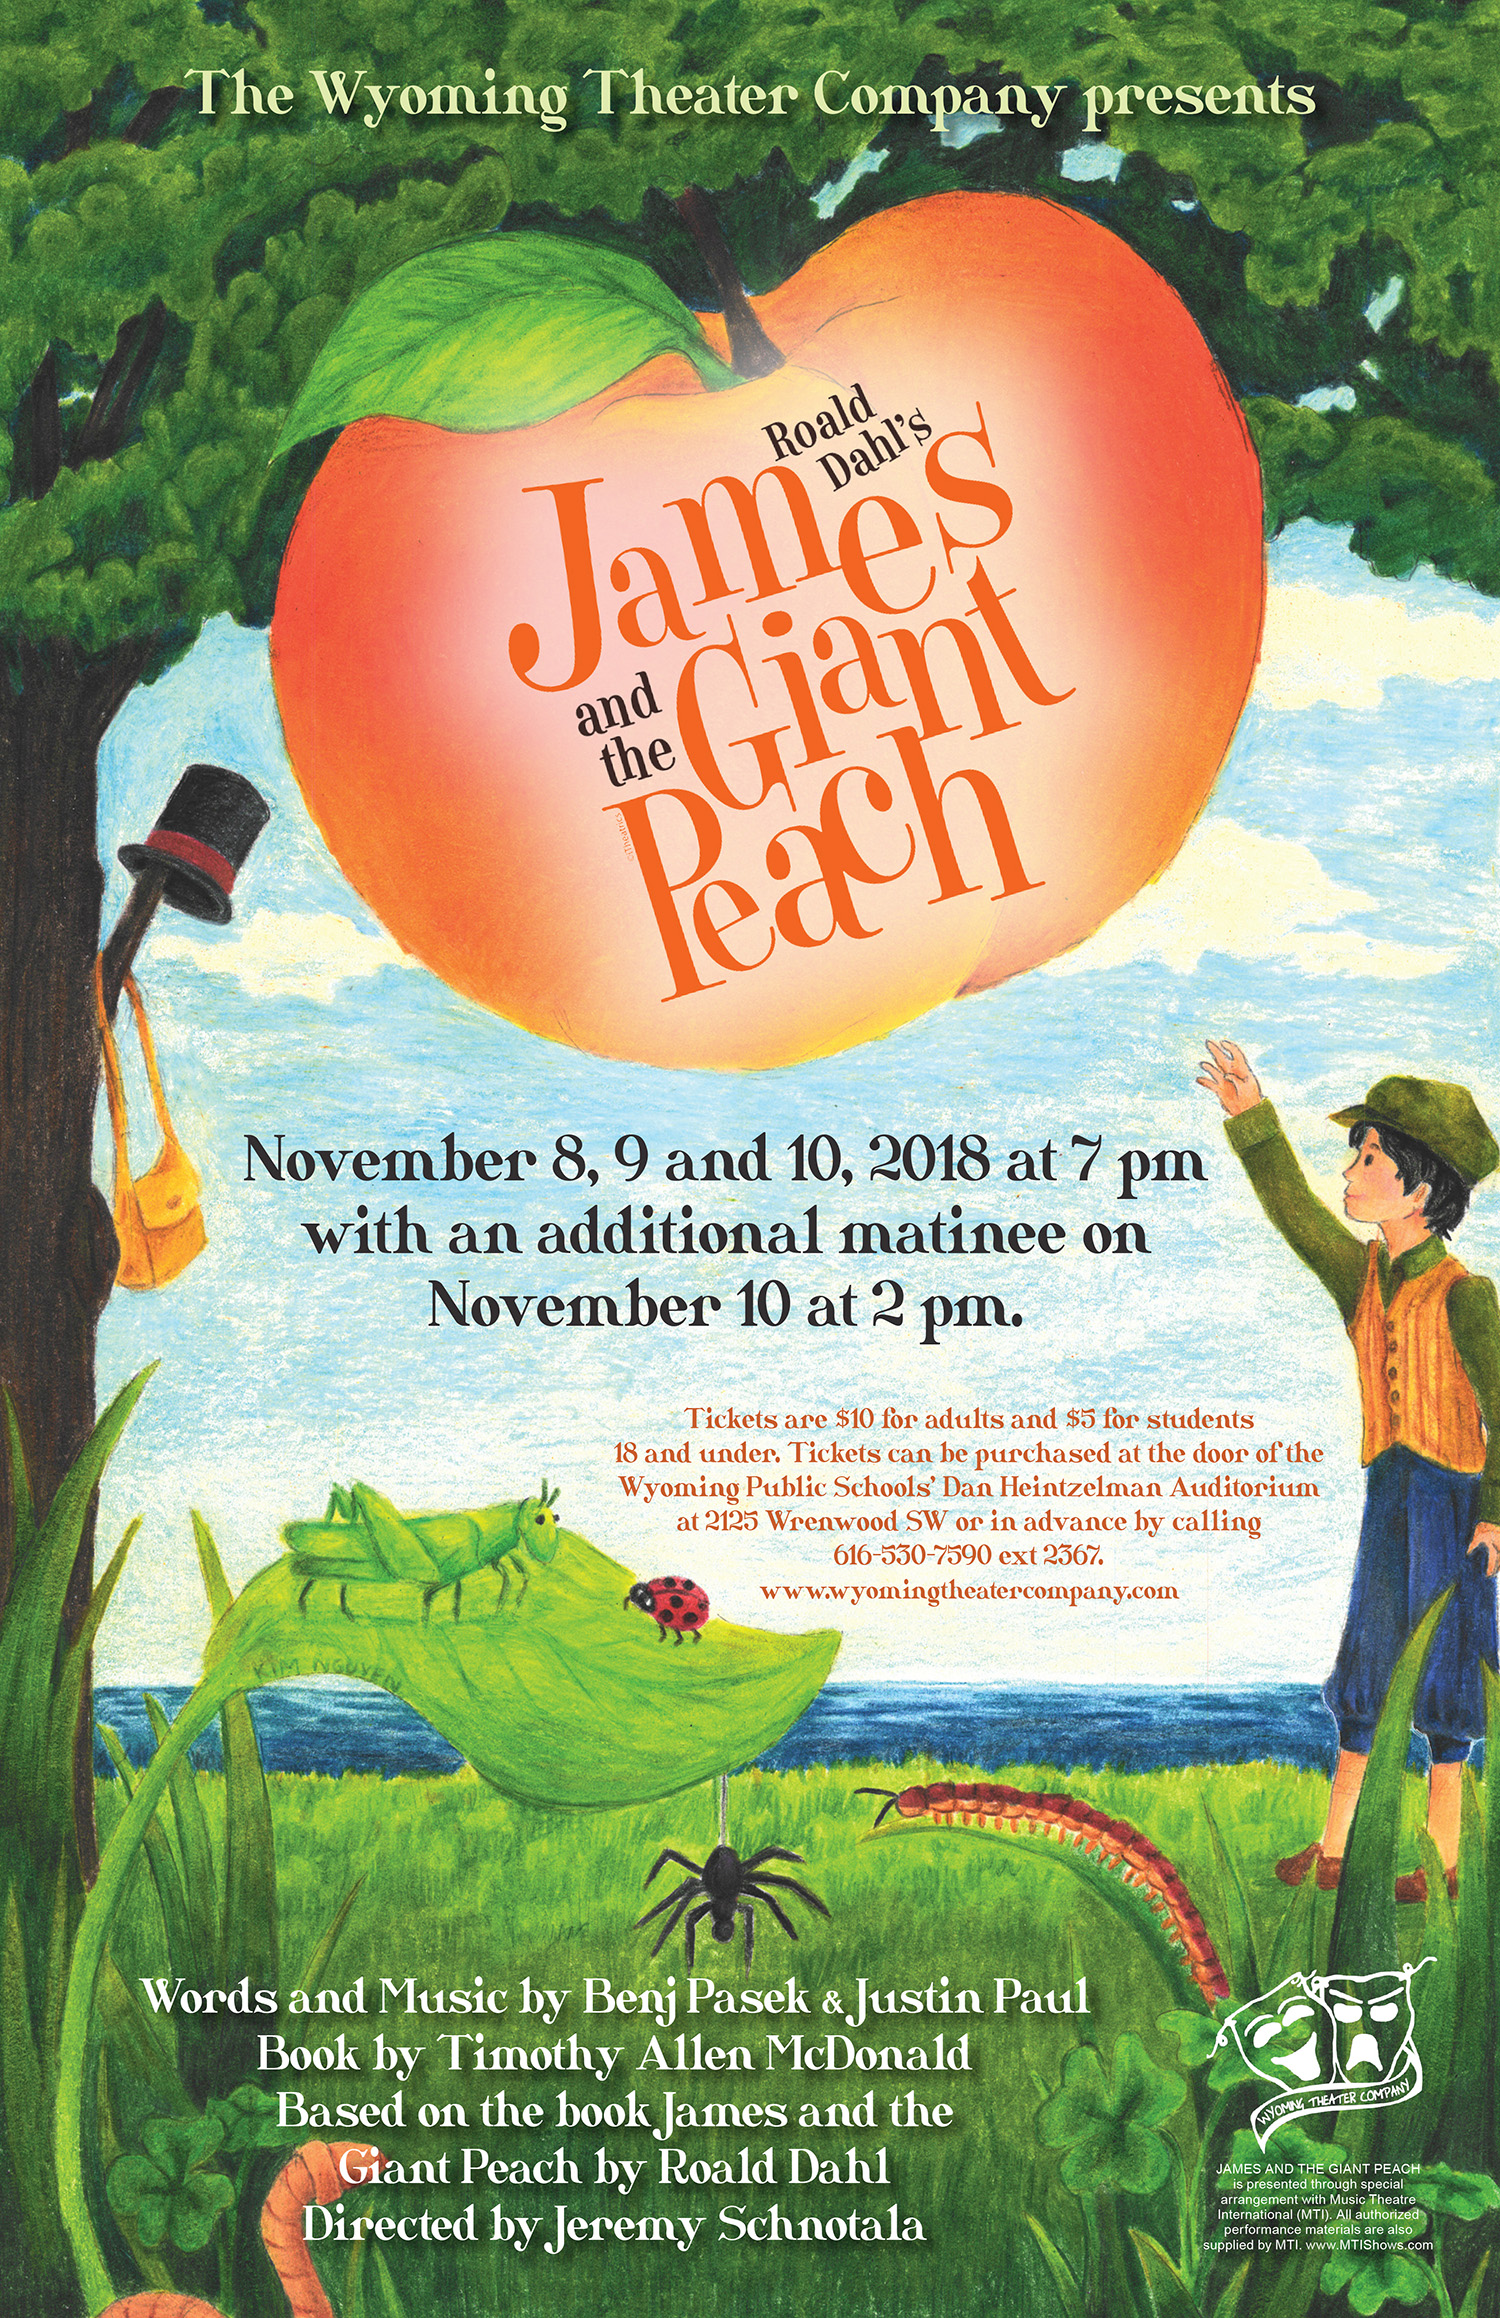 JAMES AND THE GIANT PEACH IN THE NEWS